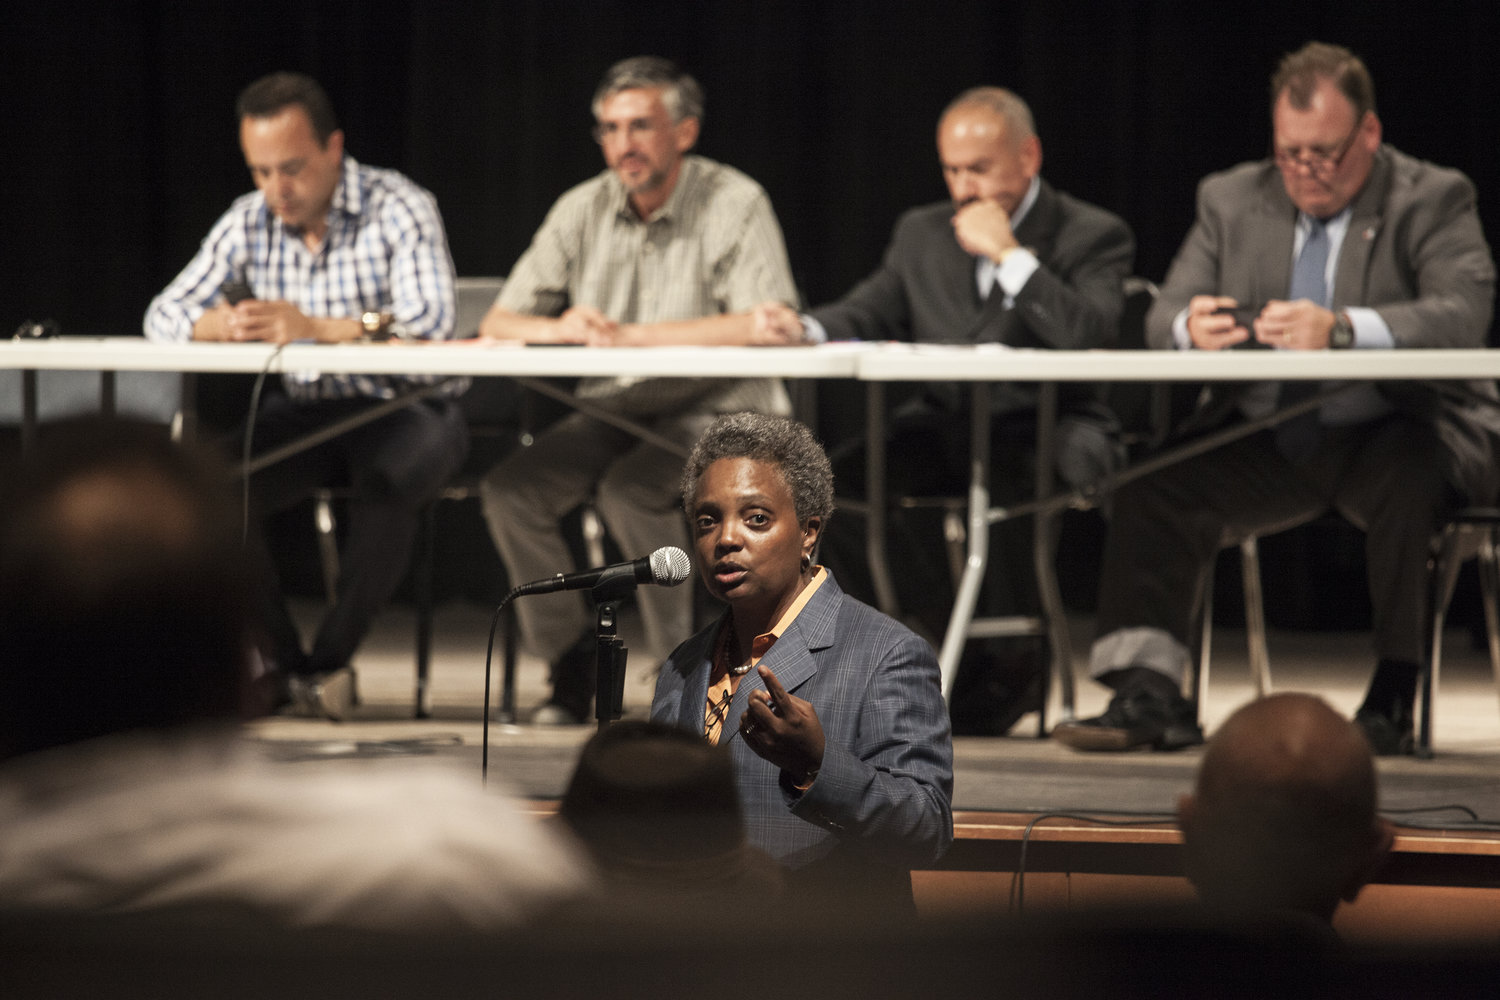 Lori Lightfoot speaking at a microphone in front of an audience